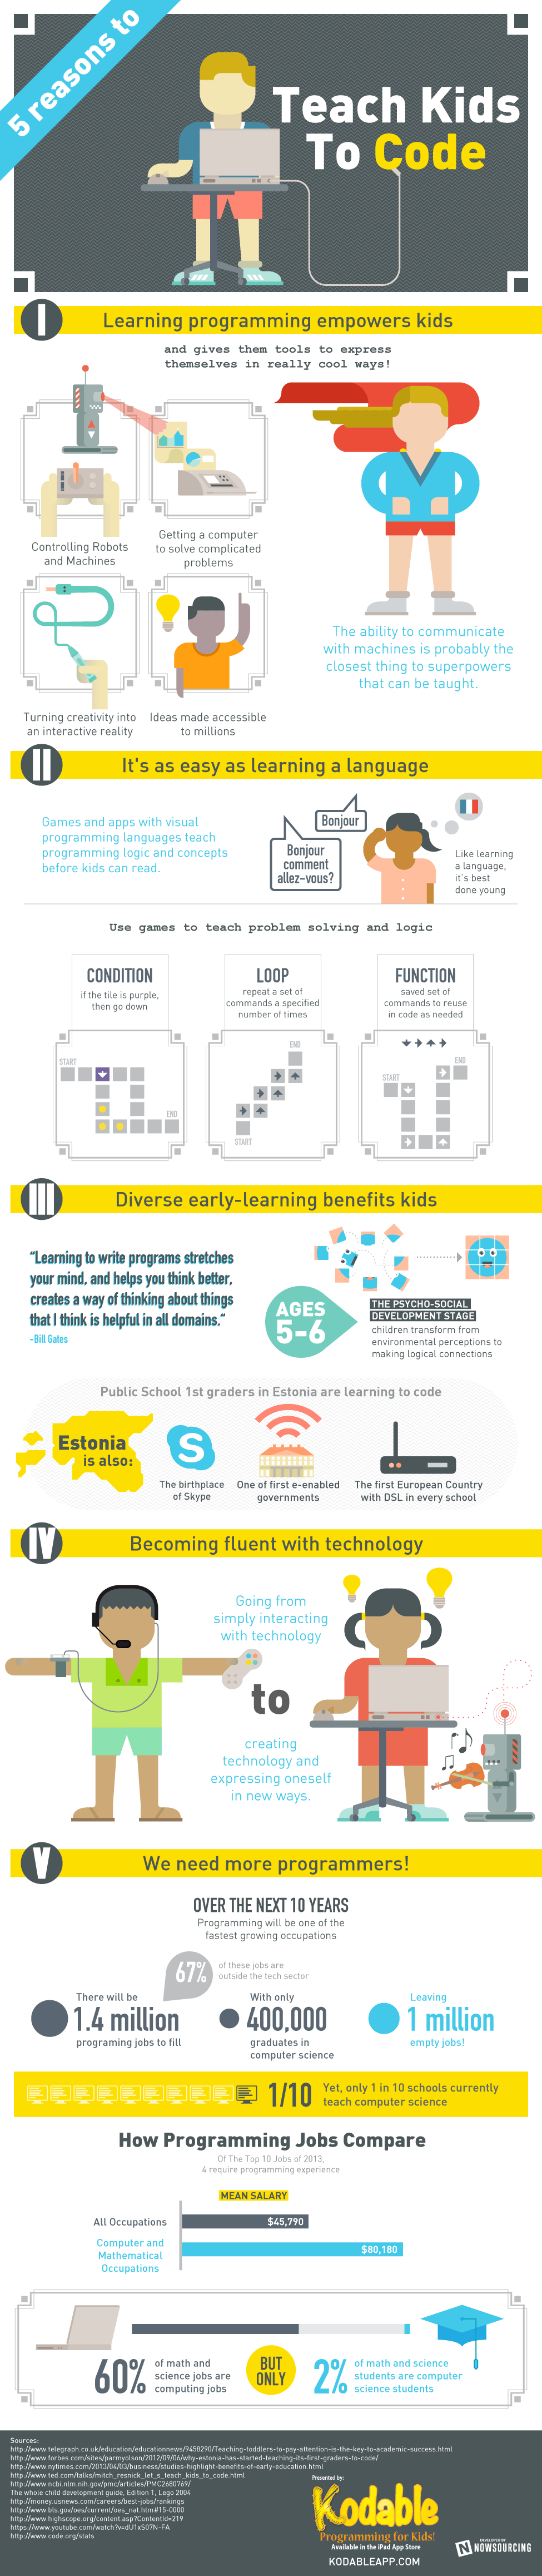 5-Reasons-to-Teach-Kids-to-Code-Infographic